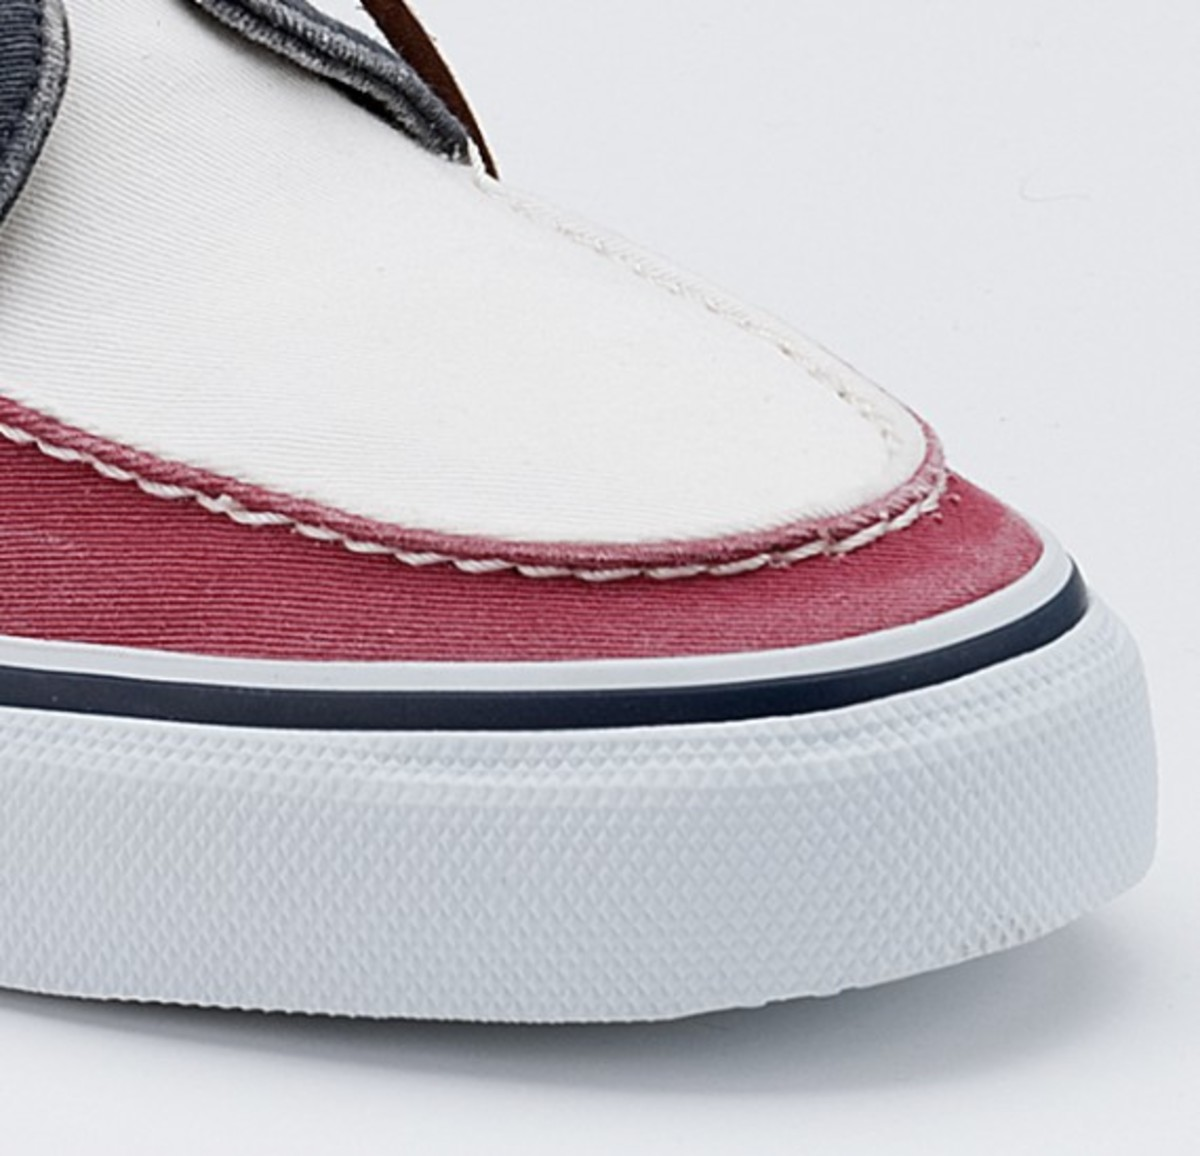 sperry_topsider_ss2010_10